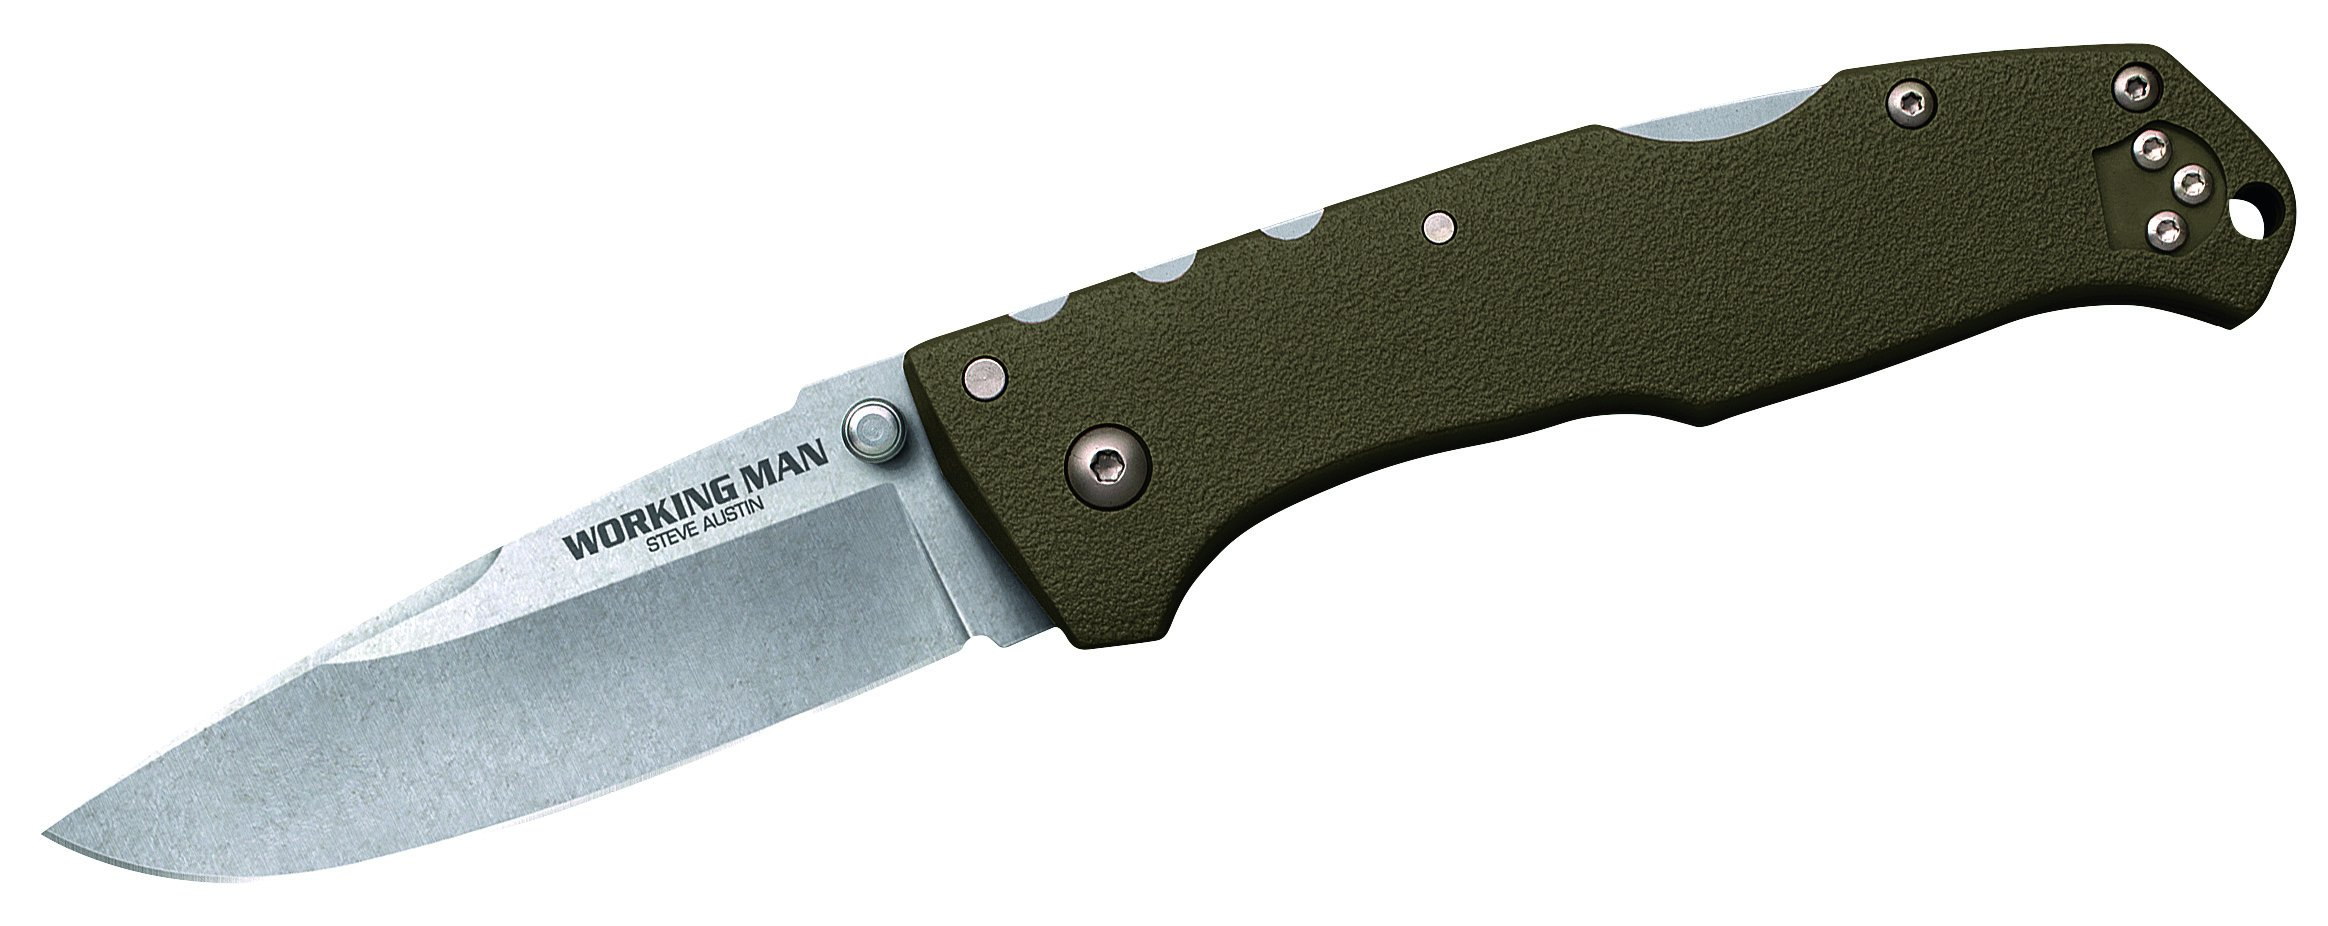 Cold Steel CS54NVG-BRK Working Man OD Green